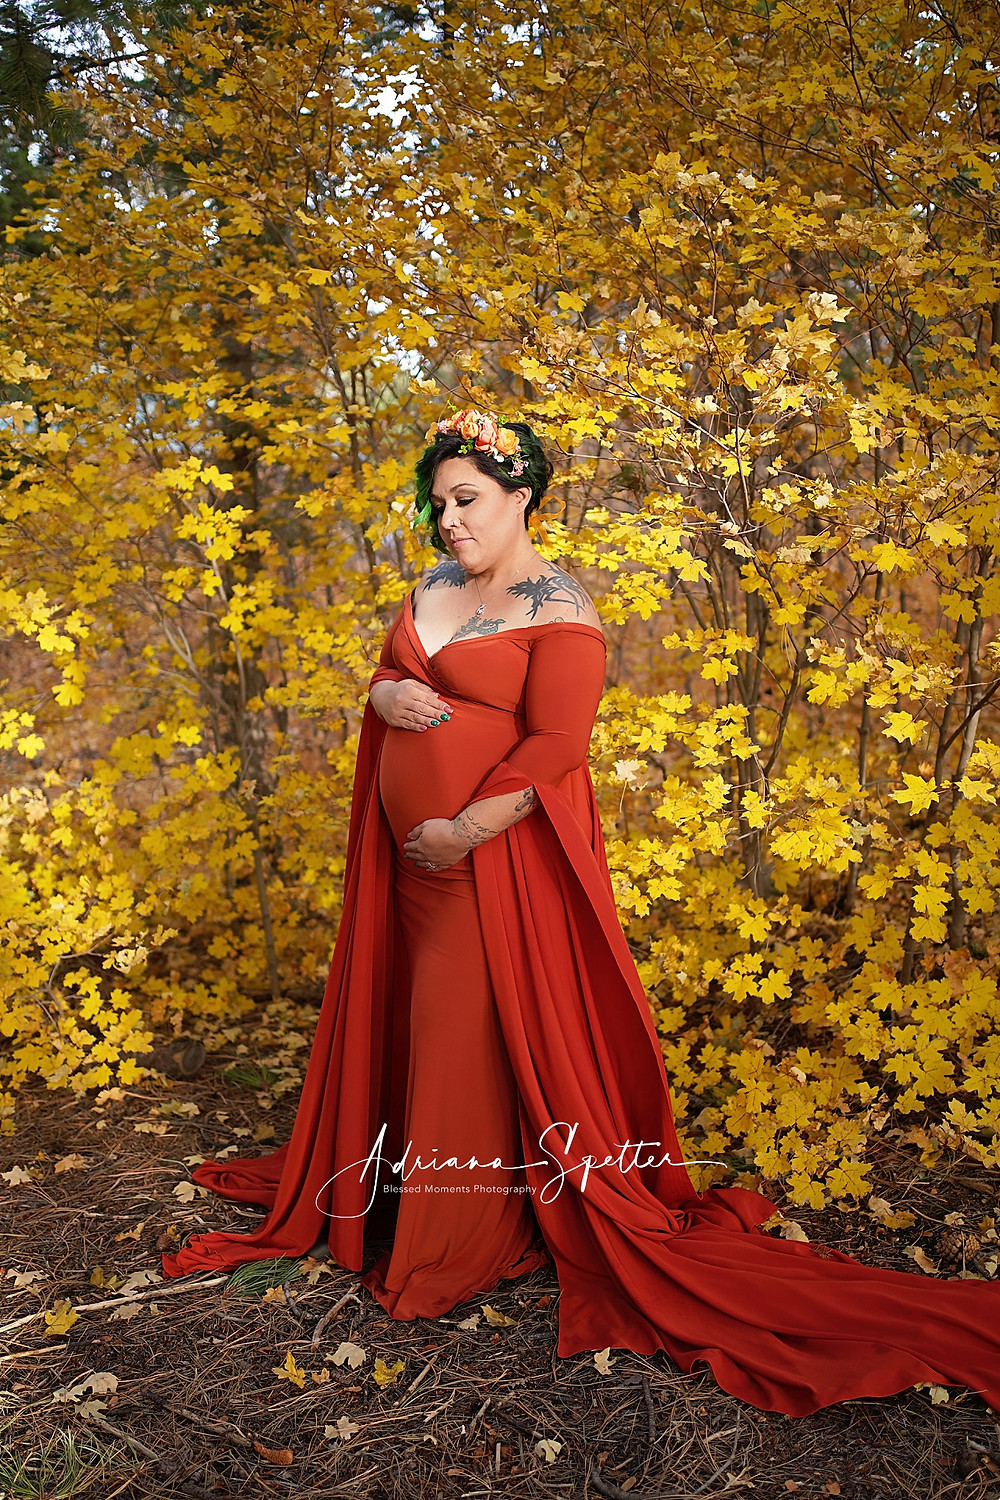 Maternity photo with mama wearing a rust colored flowing gown standing in front of a tree adorned with yellow leaves.